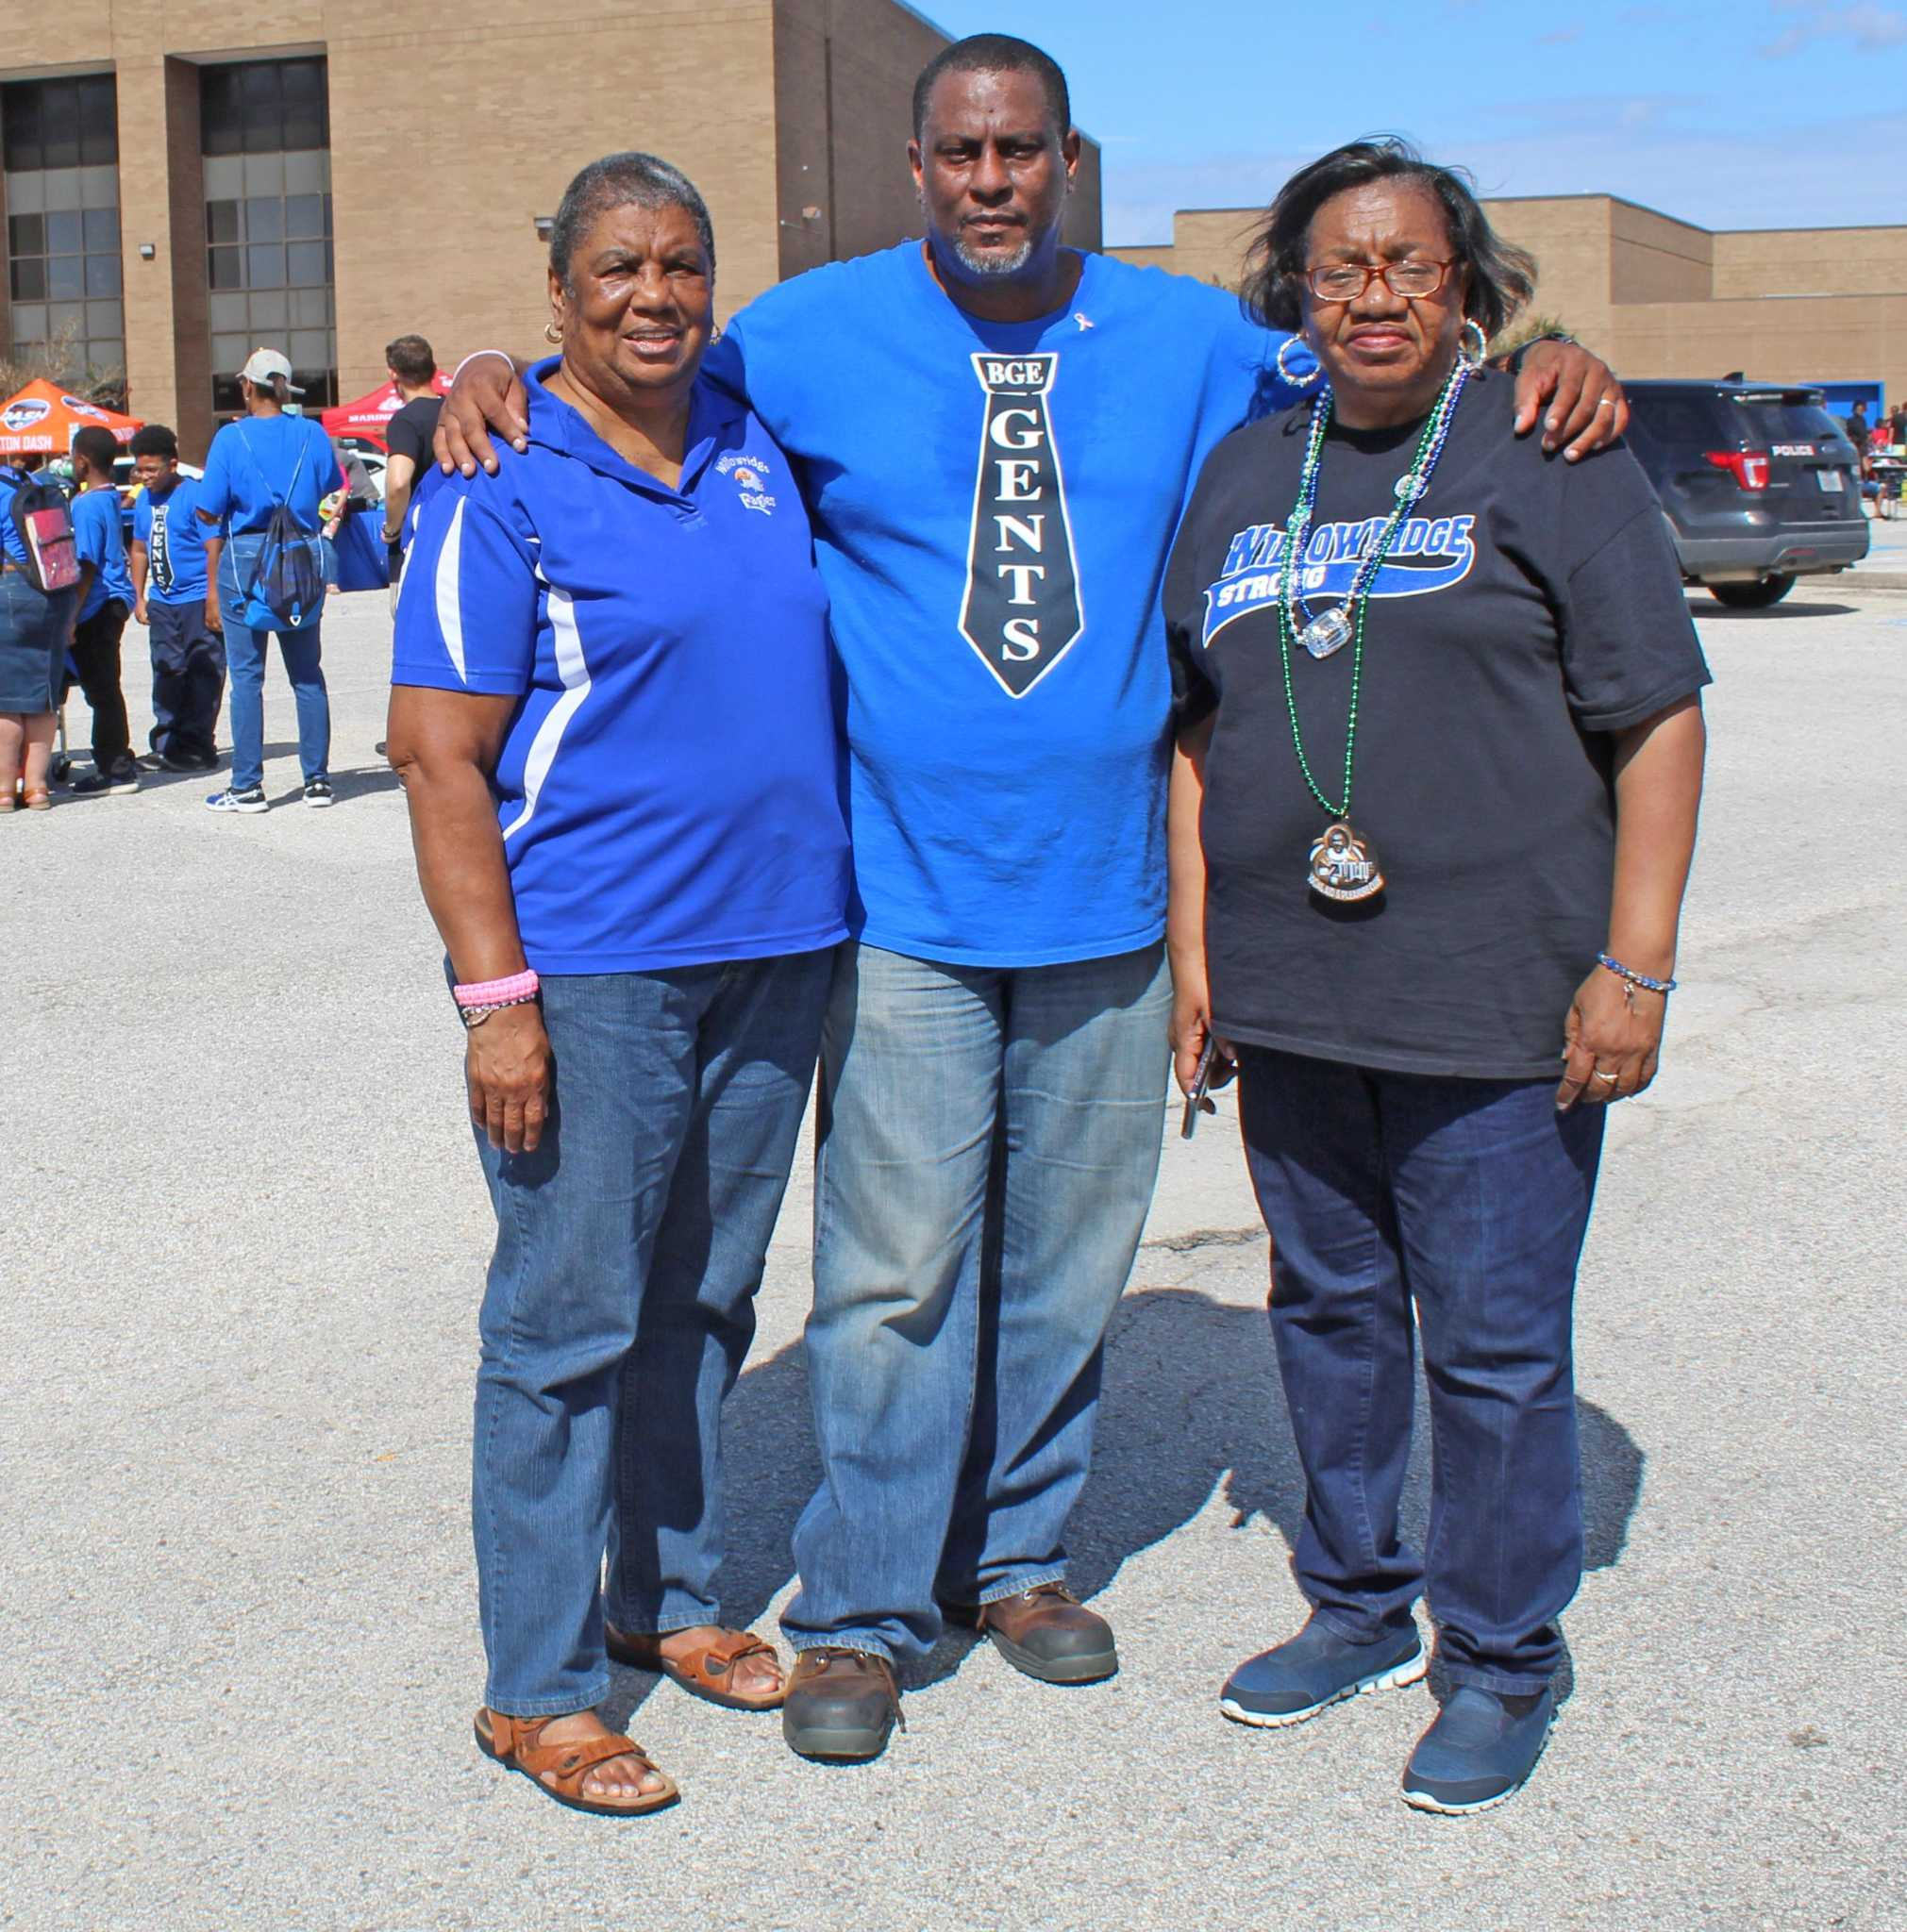 Fort Bend ISD Students, Community Bond During Festive